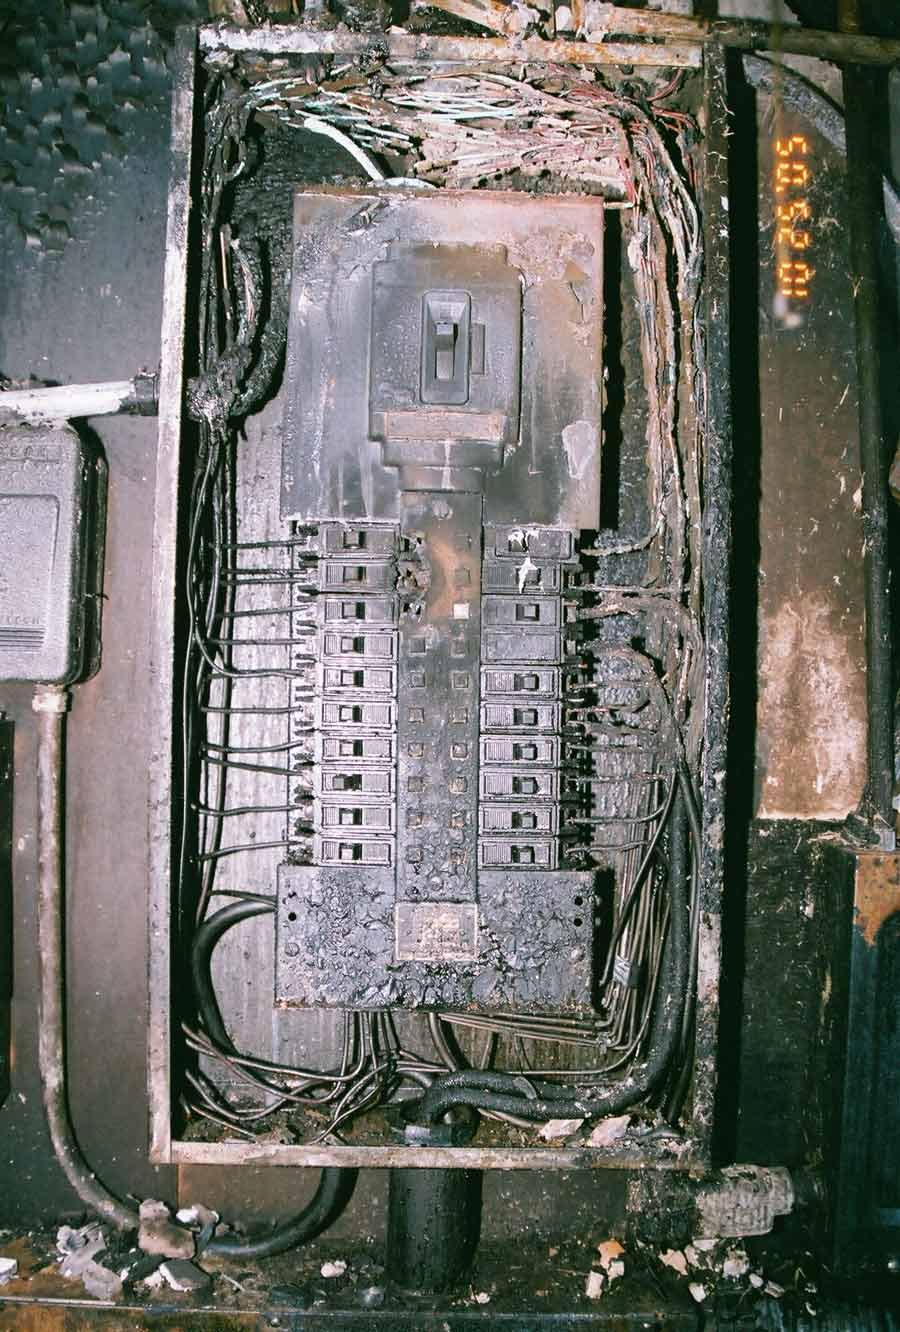 Burnt Breaker Fuse Box Data Wiring Diagram Fix Home Library Antique